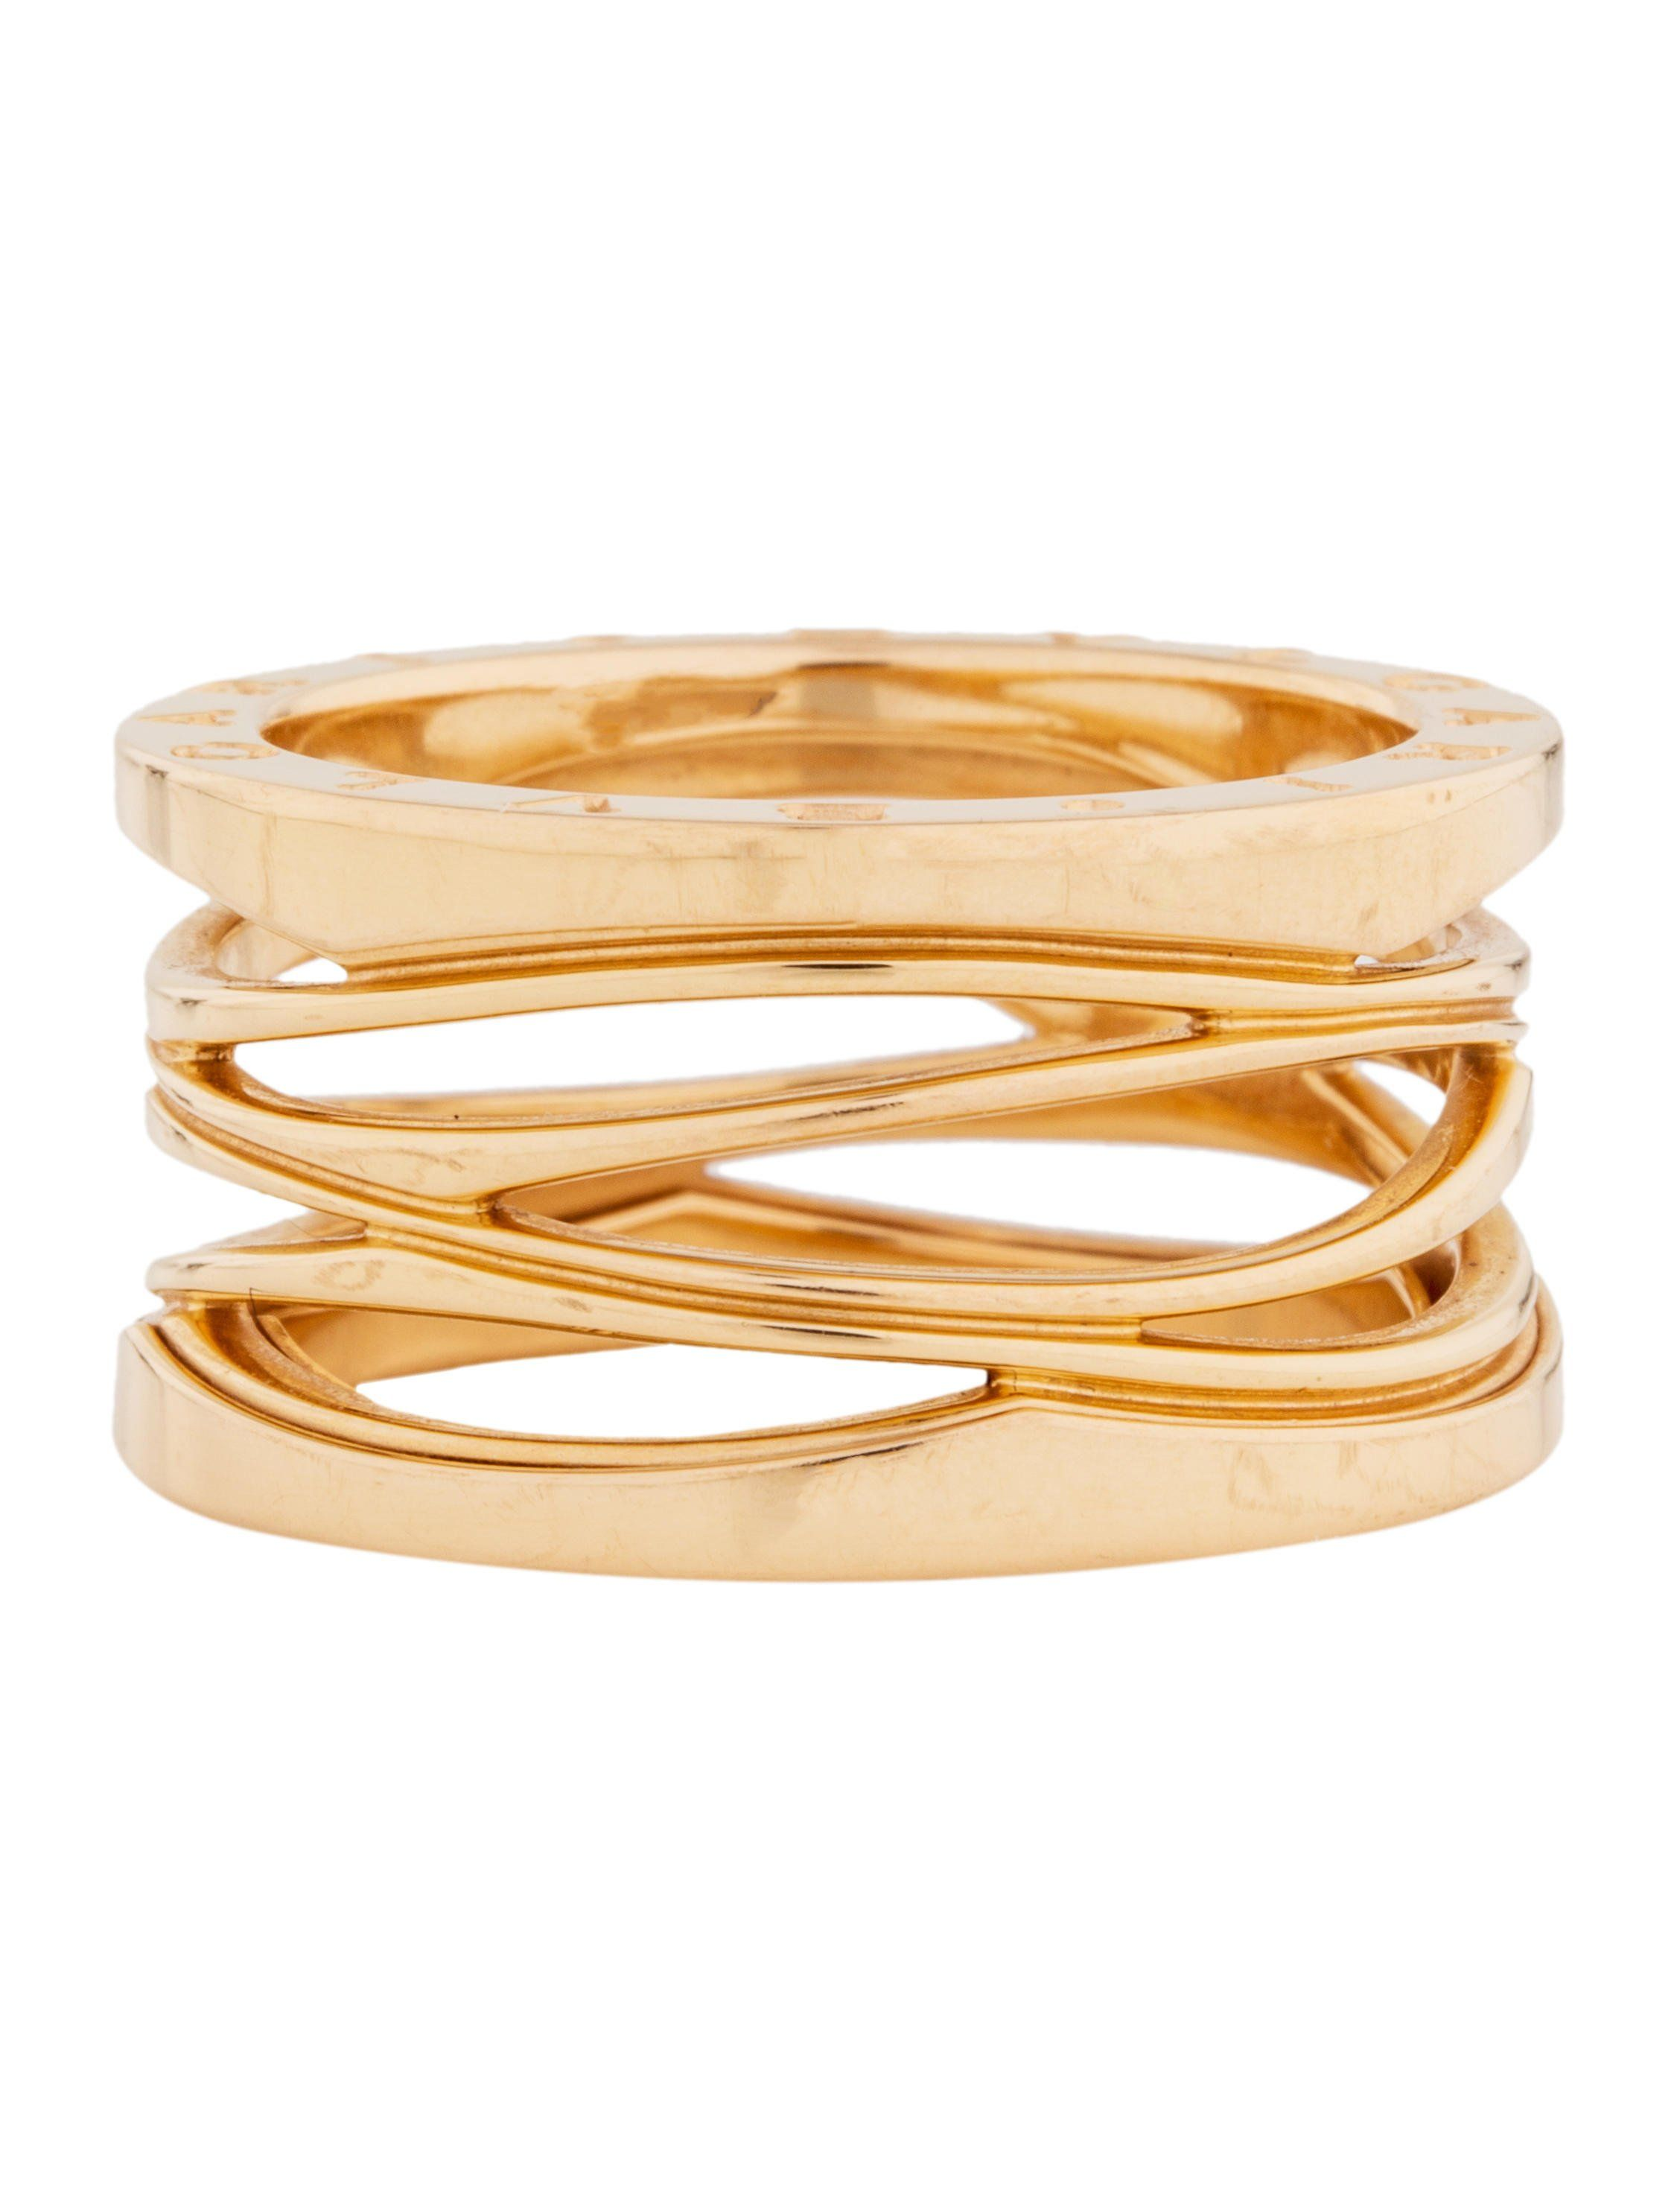 f50fd0d1749dd 18K rose gold Bvlgari Zaha Hadid B.zero1 Design Legend 4-Band ring  featuring designer engraving at edge. Includes pouch.